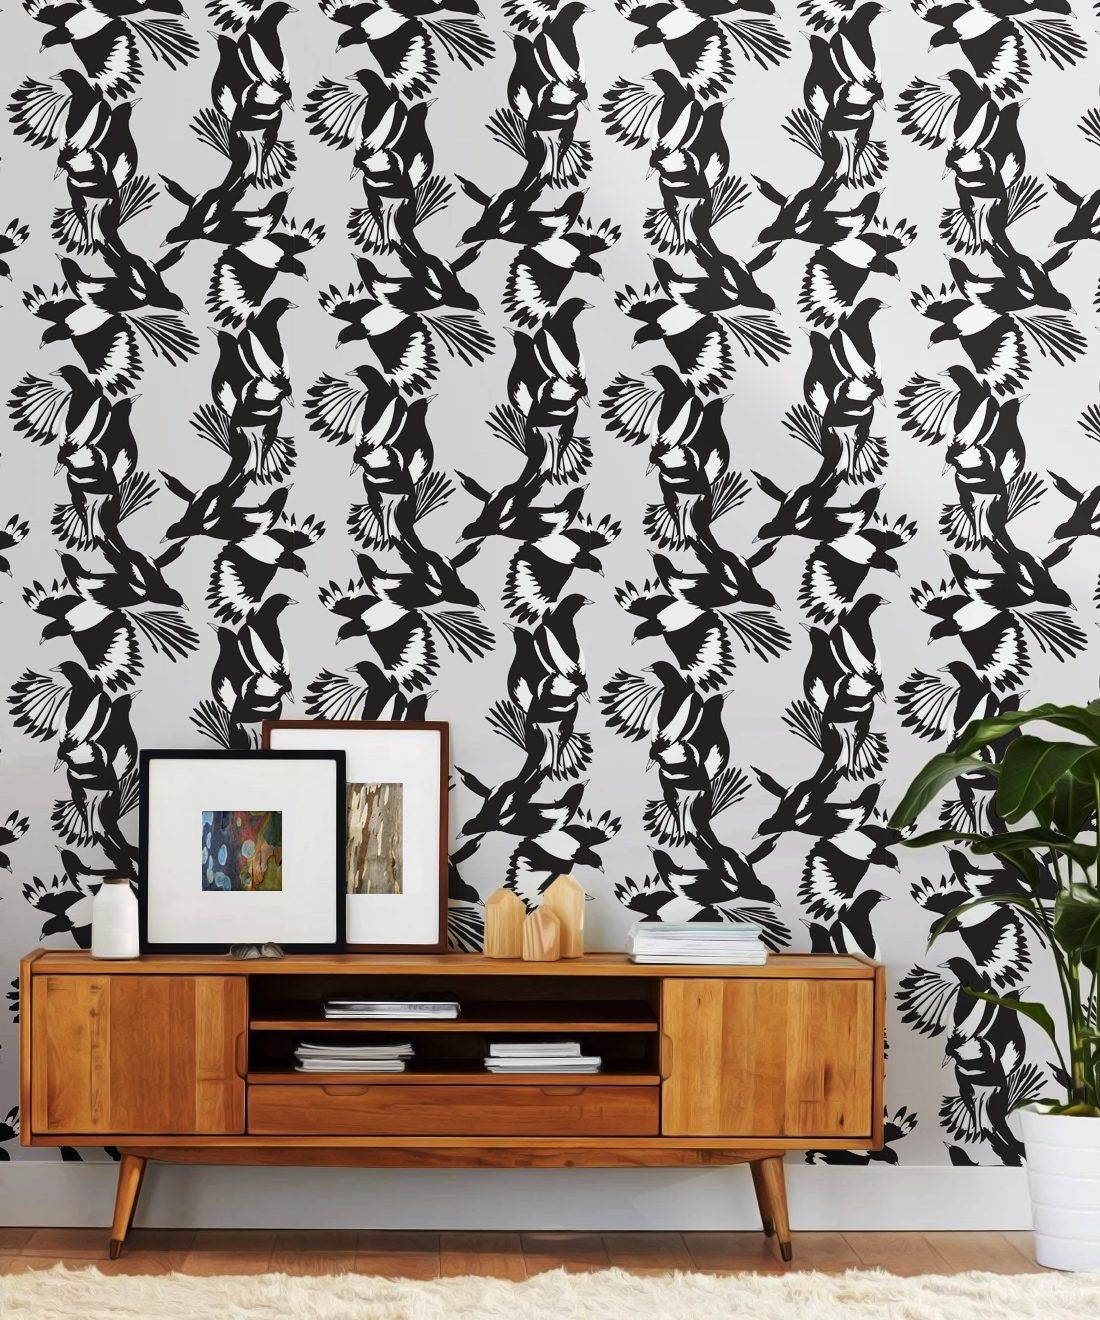 Magpie Wallpaper • Milton & King • Kingdom Home • Bird Wallpaper • Black & White Insitu